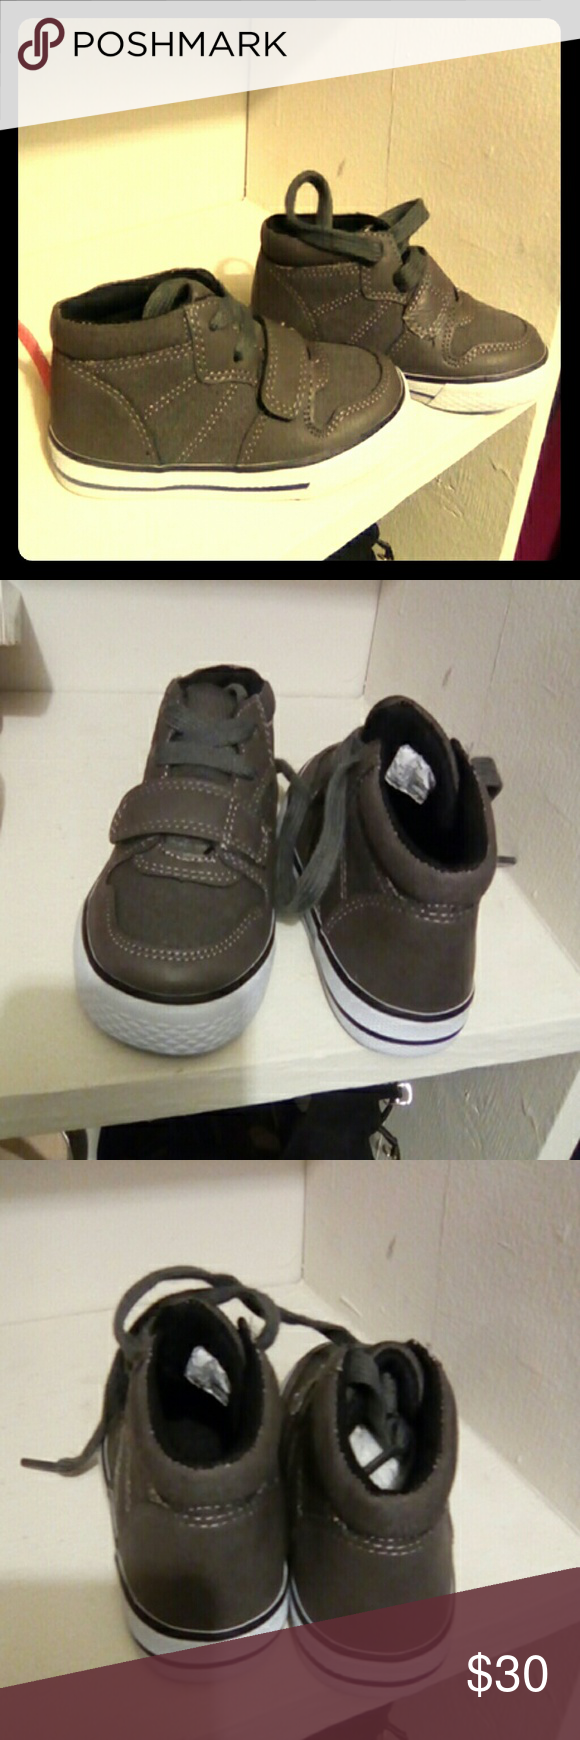 Boy sneakers New with out tags infant shoes Shoes Sneakers